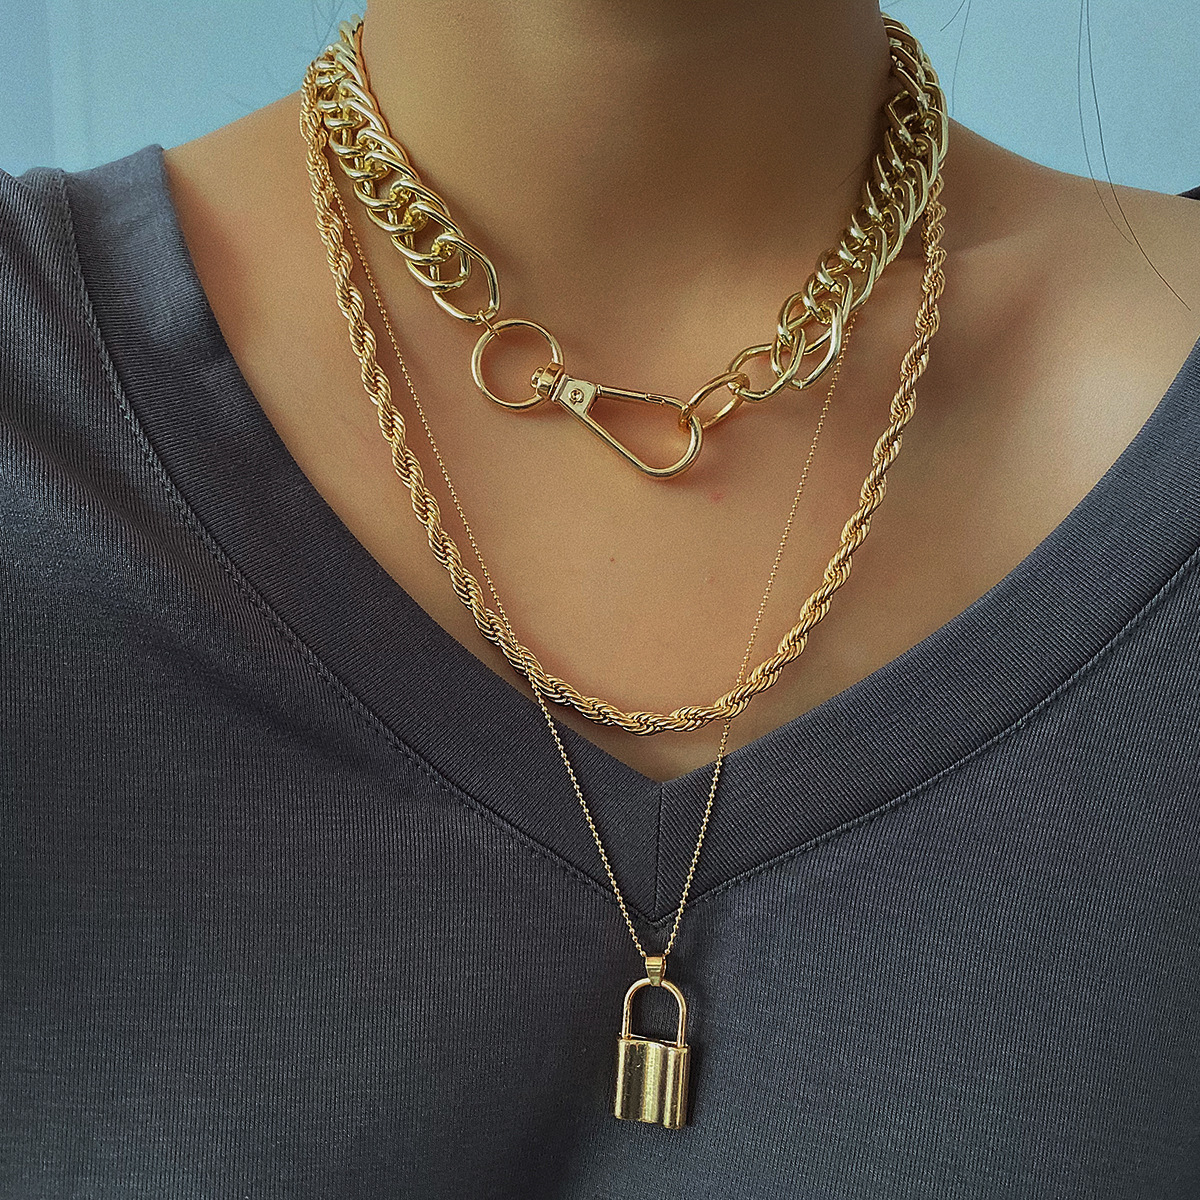 New Style Lock Pendant Necklace for Women Twisted Clavicle Chain Punk Choker Female Gold Color 2020 Fashion Jewelry Layered